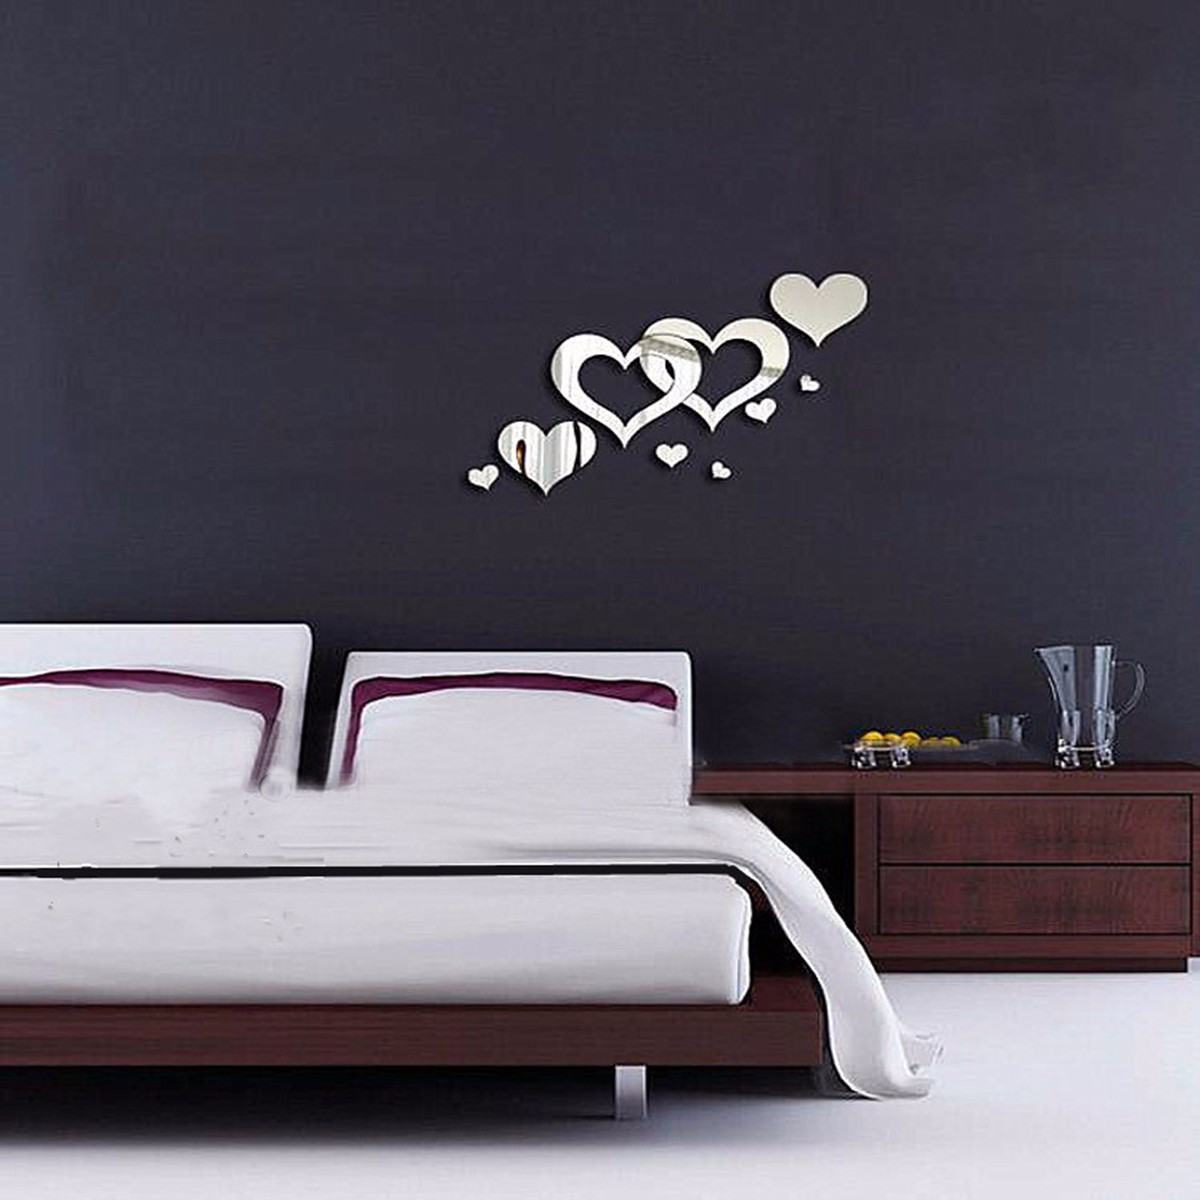 Didiy 3d home living room bedroom decor heart mirror art for Bedroom 3d wall stickers